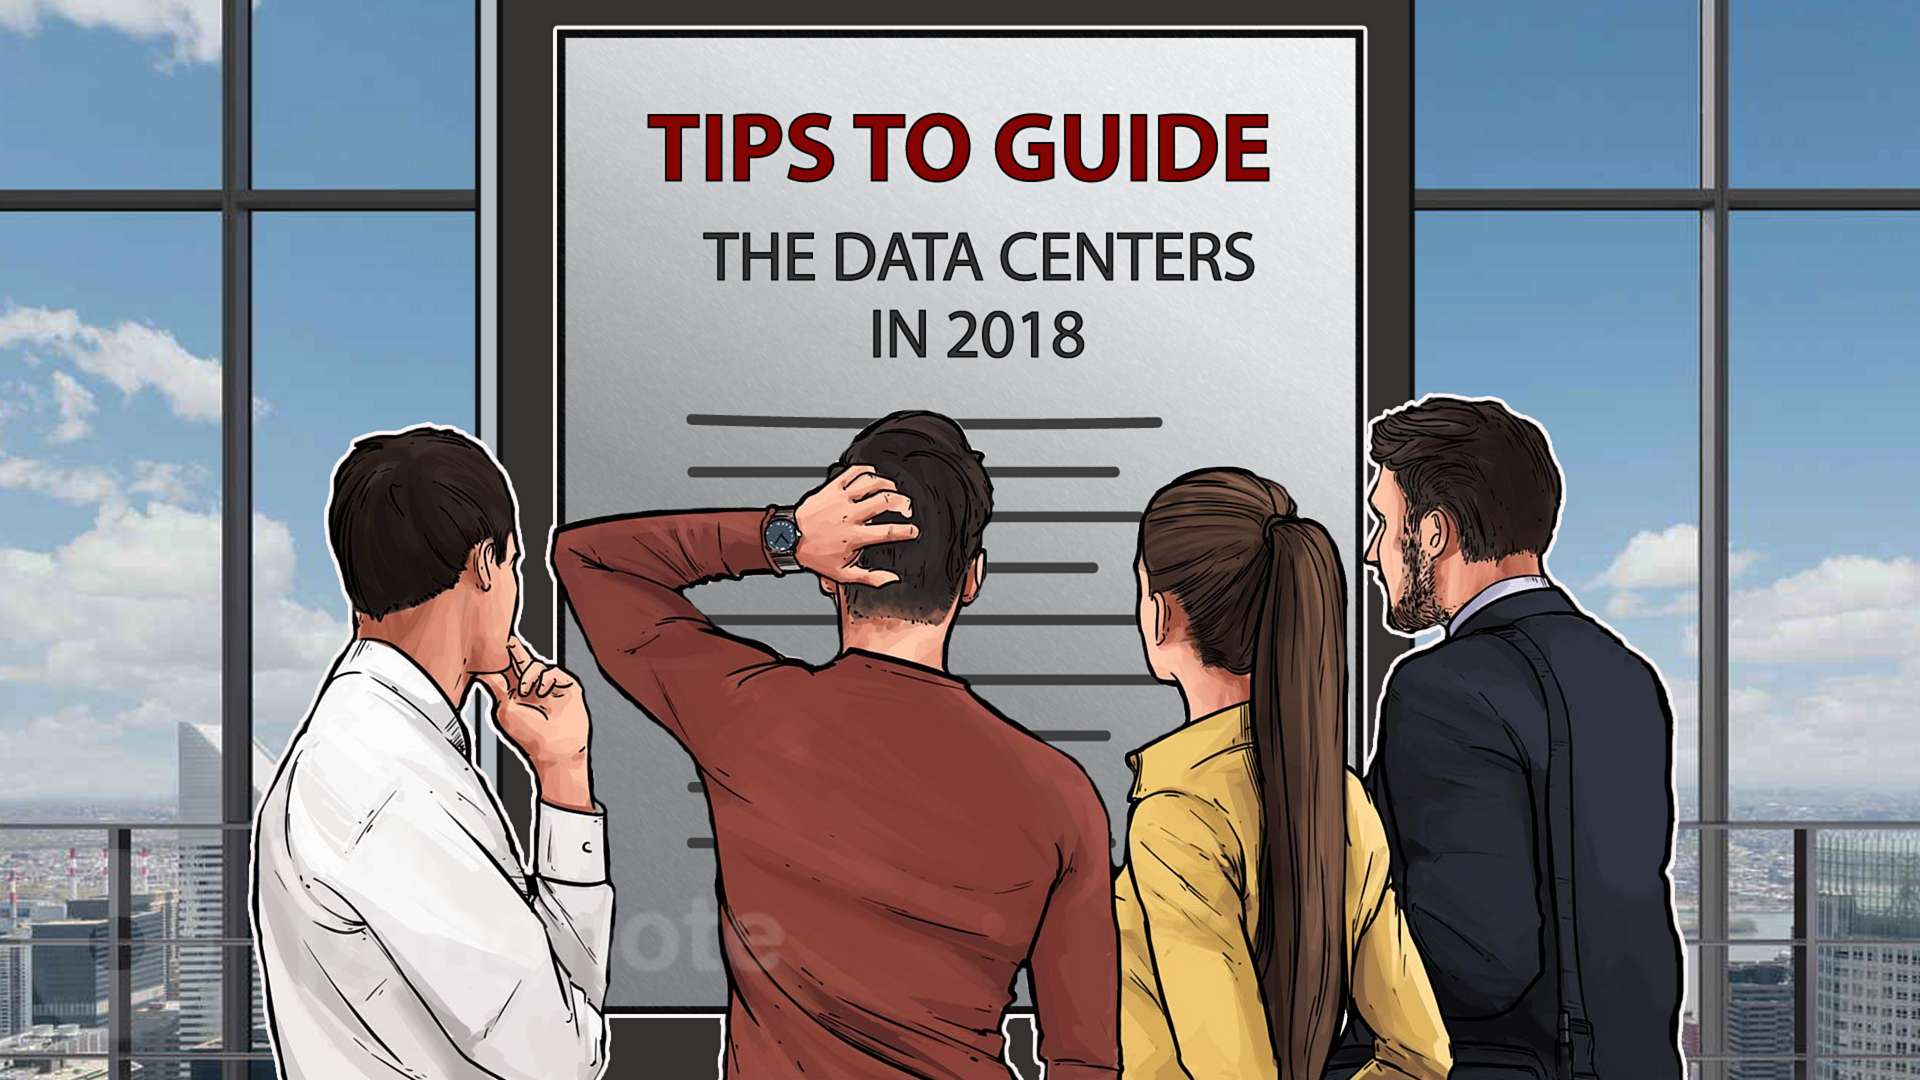 Tips to guide the data centers in 2018